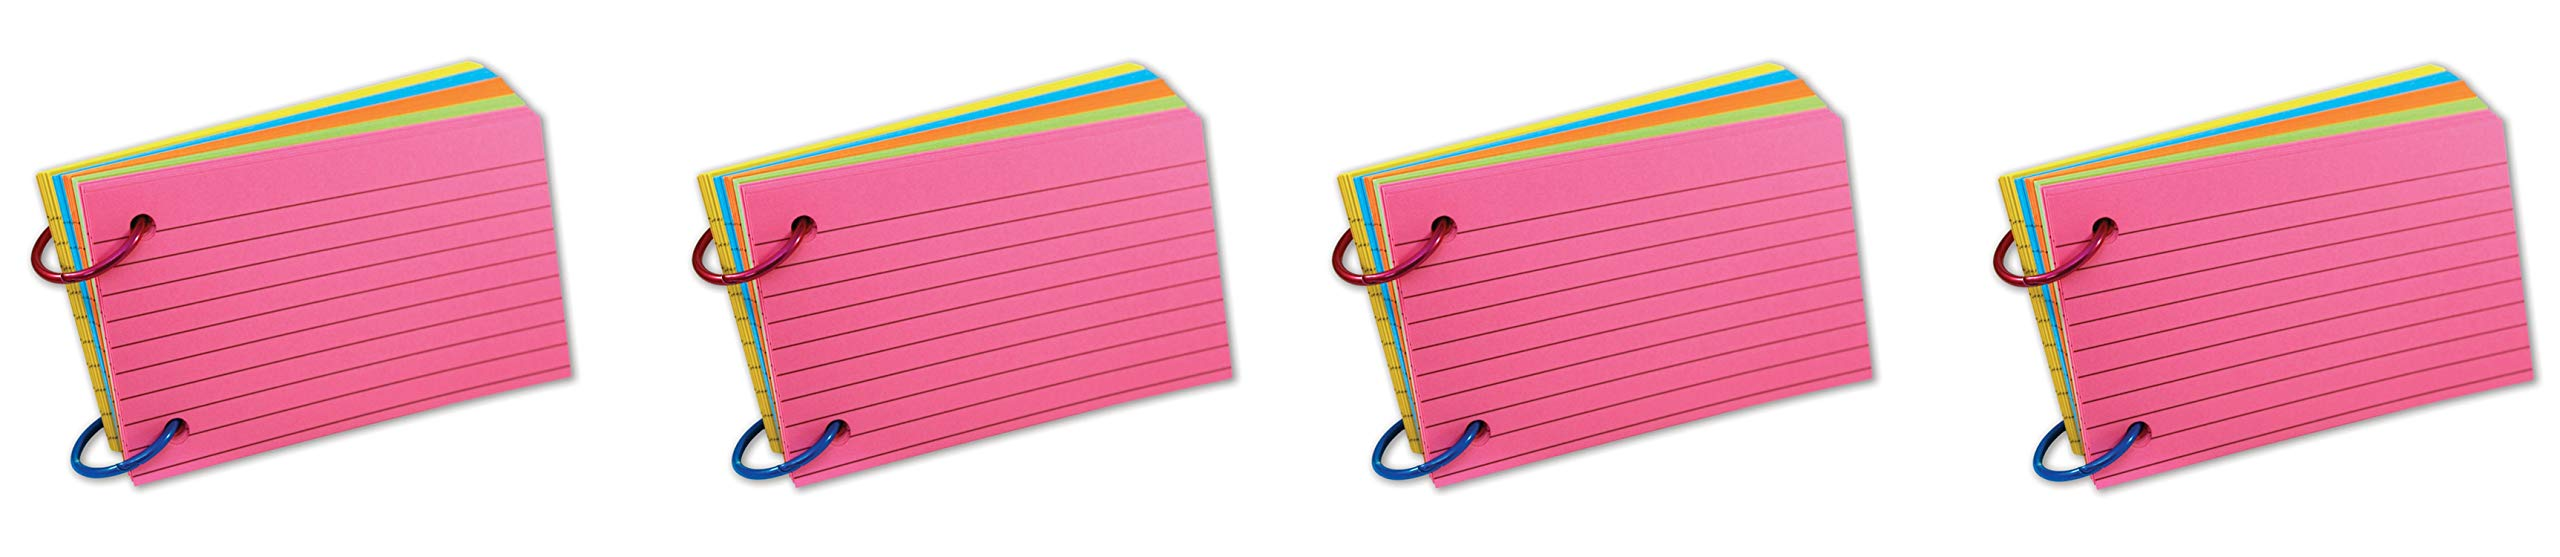 Top Notch Teacher Products TOP3674 Ring Notes, Lined, Assorted Bright Colors, 3'' x 5'', Pack of 75 (Fоur Paсk)